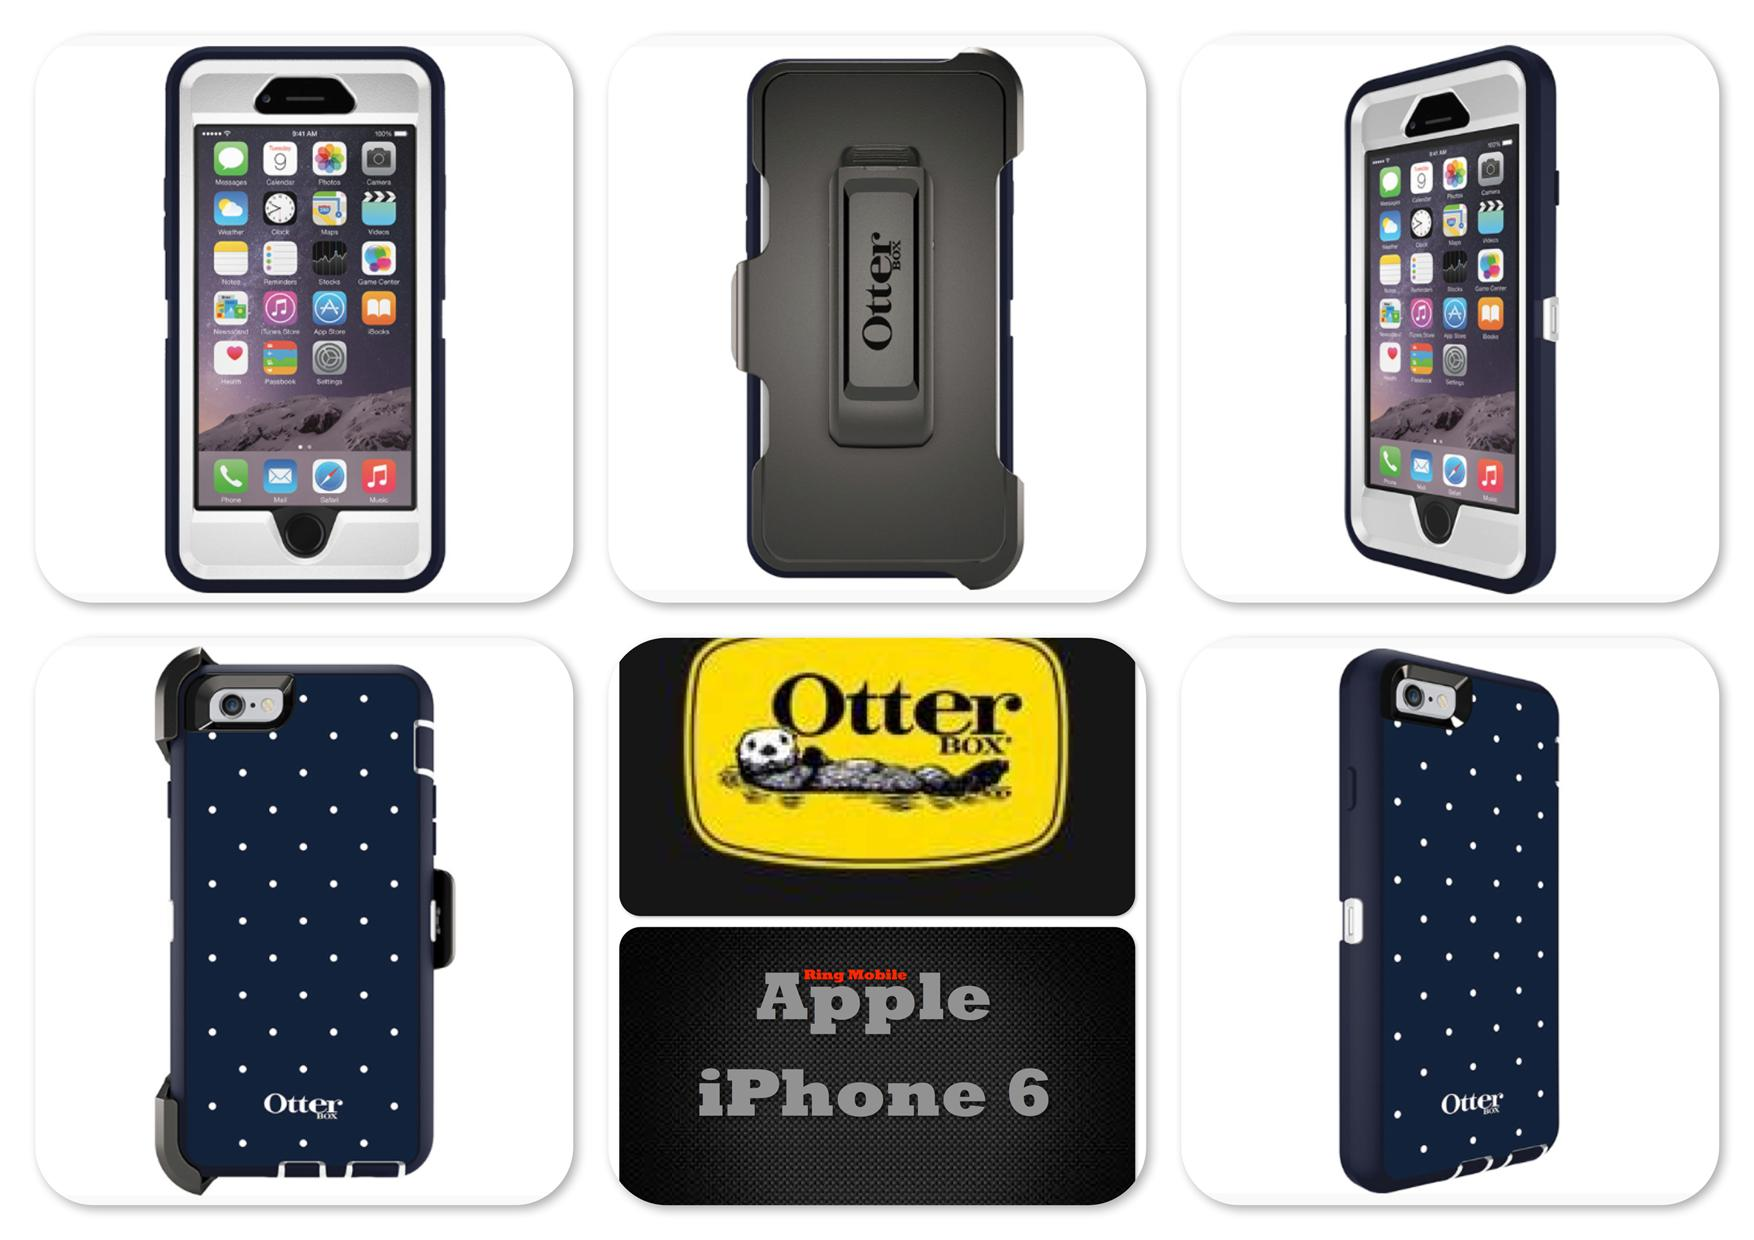 Bdotcom Apple iPhone 6 4.7' Otterbox Defender Series Case Classic Dot